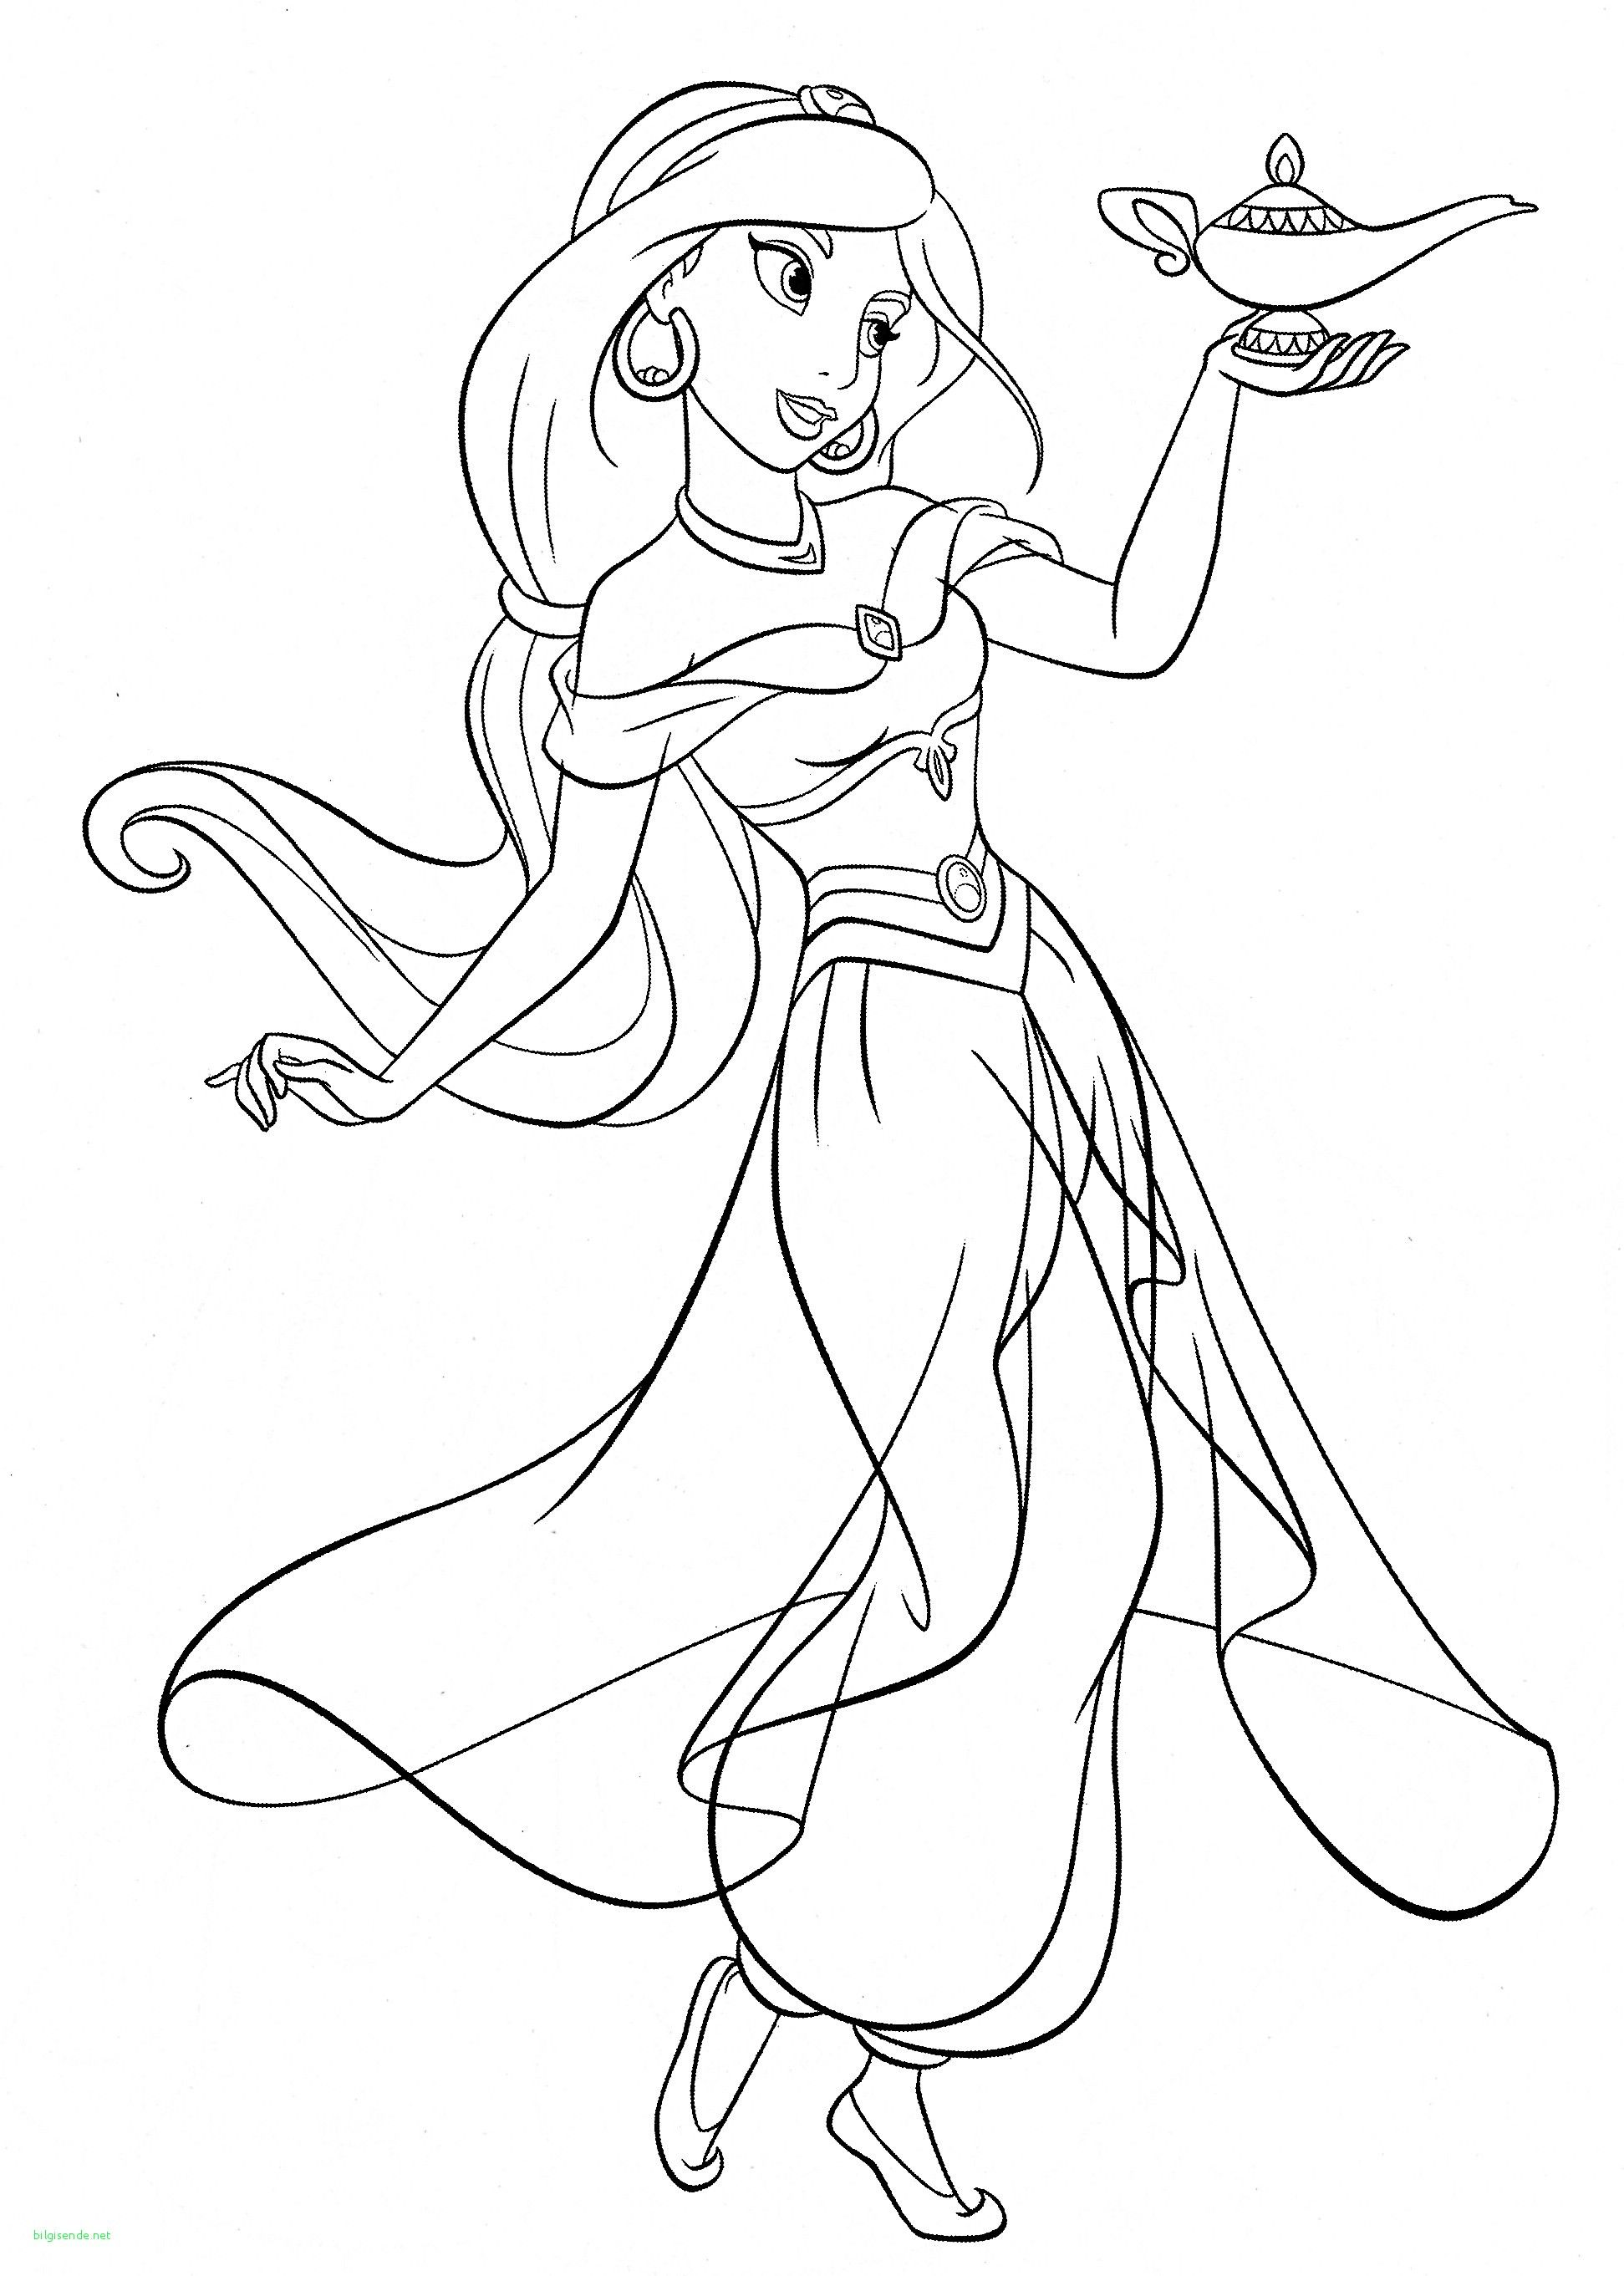 Disney Princess Coloring Pages Jasmine From The Thousand Photos On The Web With Regards Disney Princess Coloring Pages Princess Coloring Fairy Coloring Pages